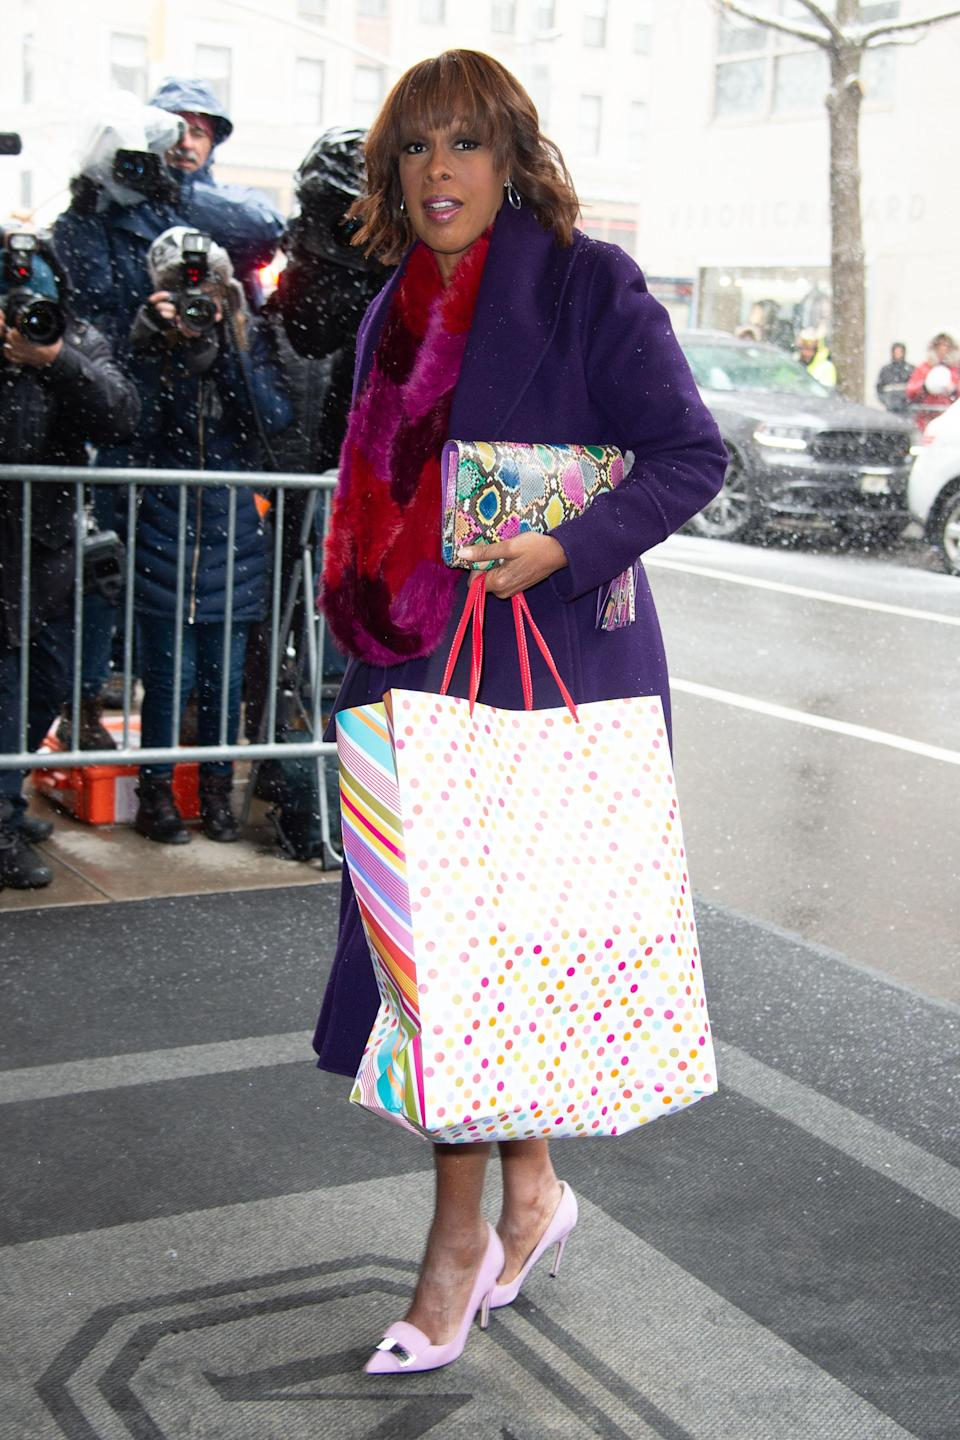 Gayle King arrives at The Mark hotel in New York carrying a gift bag [Photo: Getty]